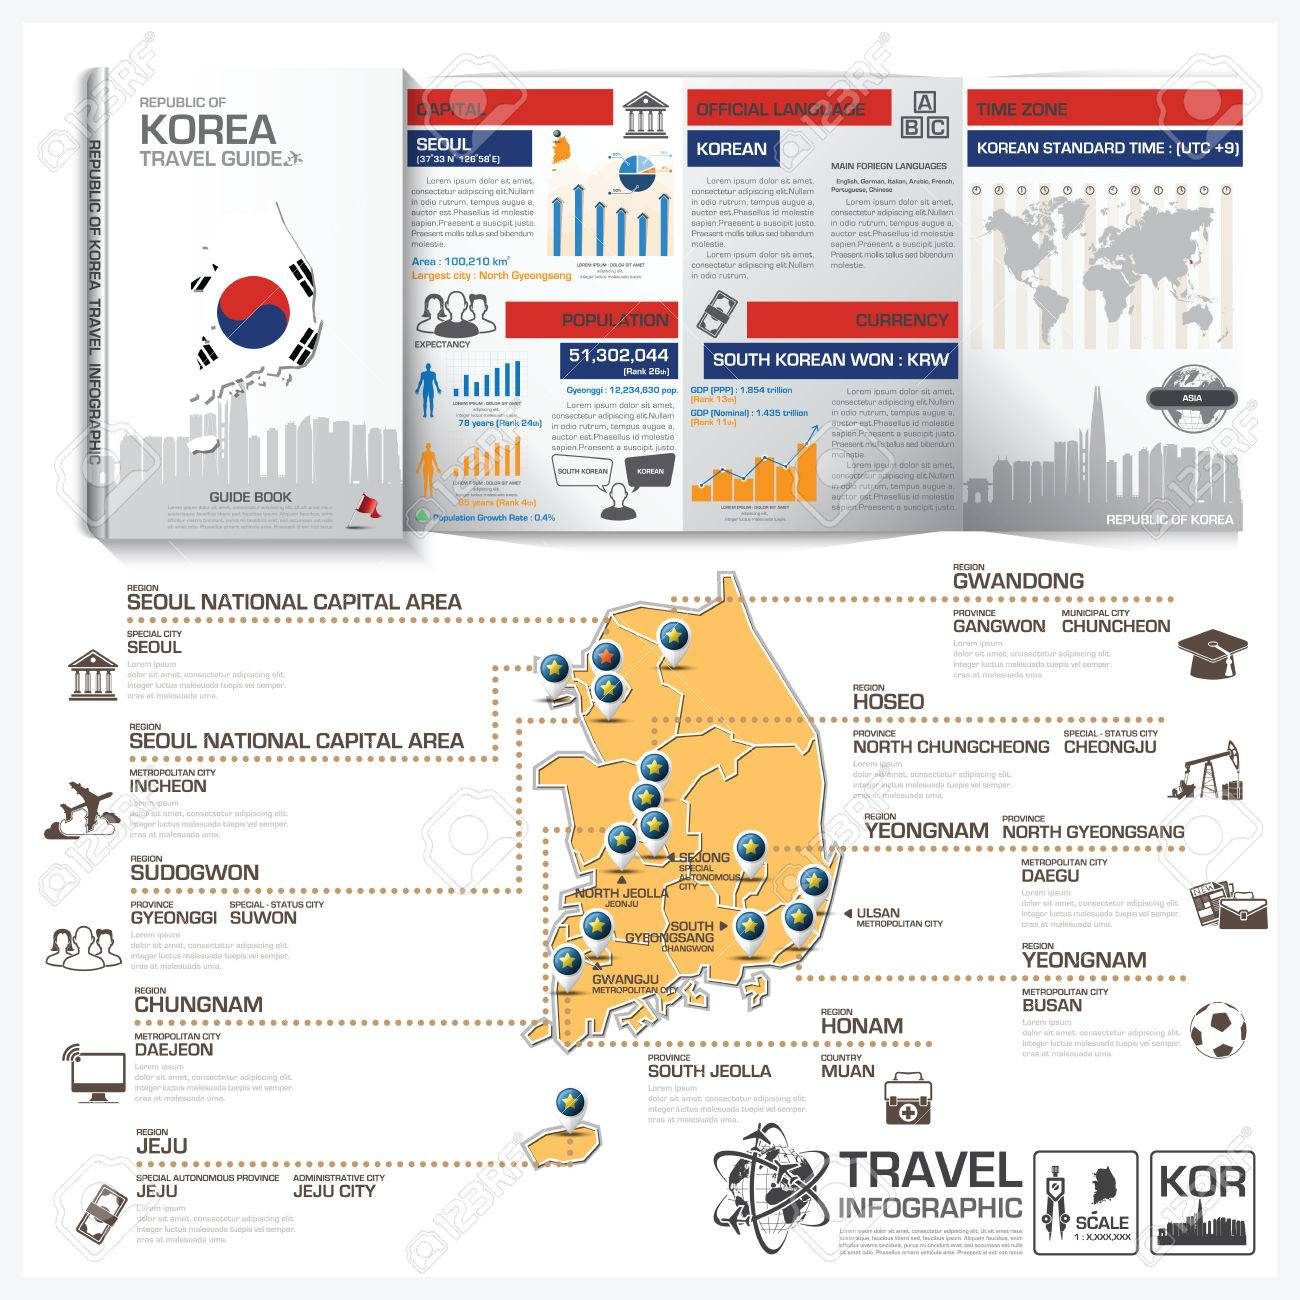 republic of korea travel guide book business infographic with